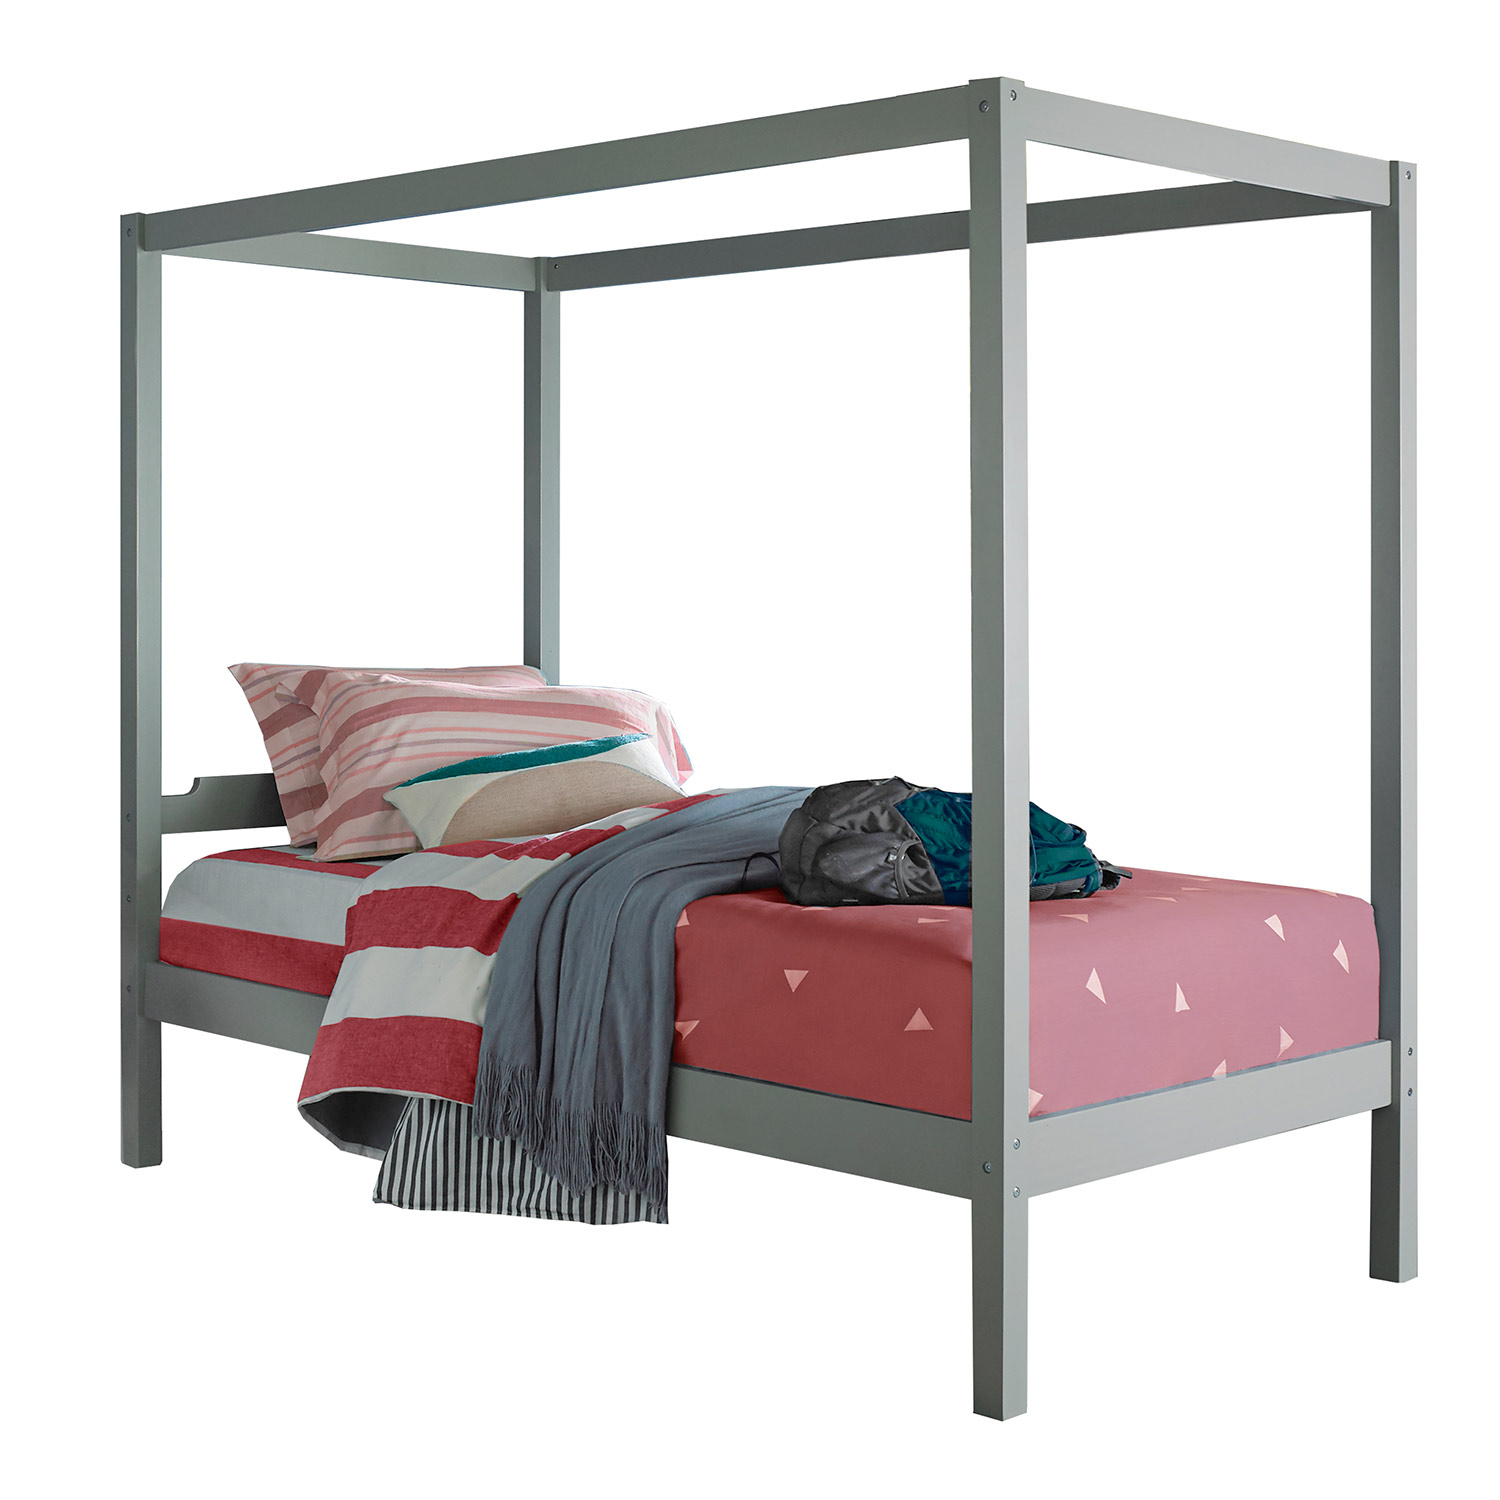 Hillsdale Sutton Wood Canopy Twin Bed - Gray